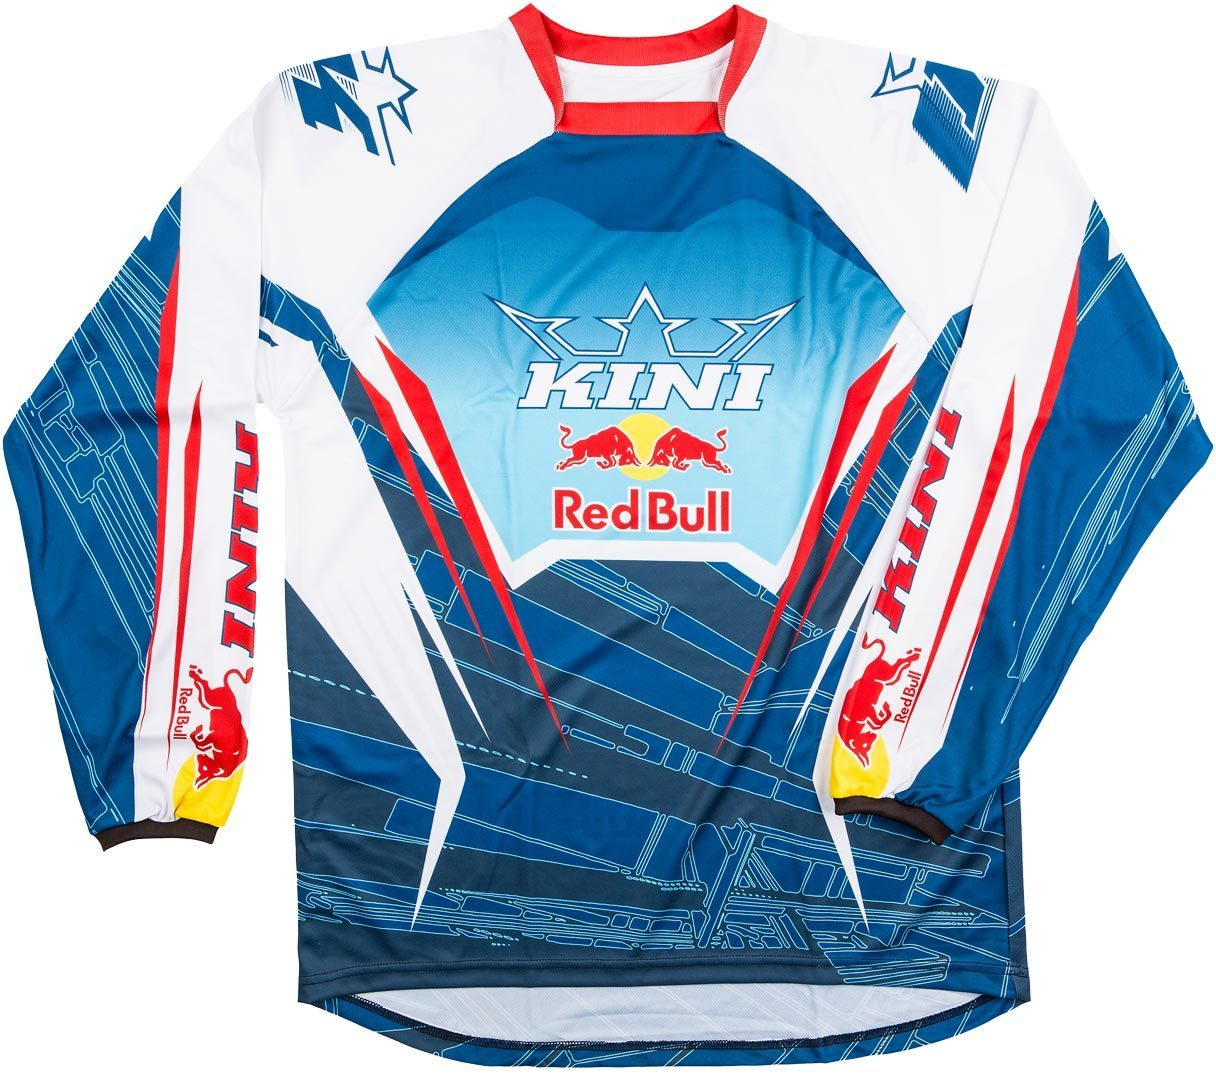 kini red bull competition jersey 2016 g nstig kaufen fc moto. Black Bedroom Furniture Sets. Home Design Ideas